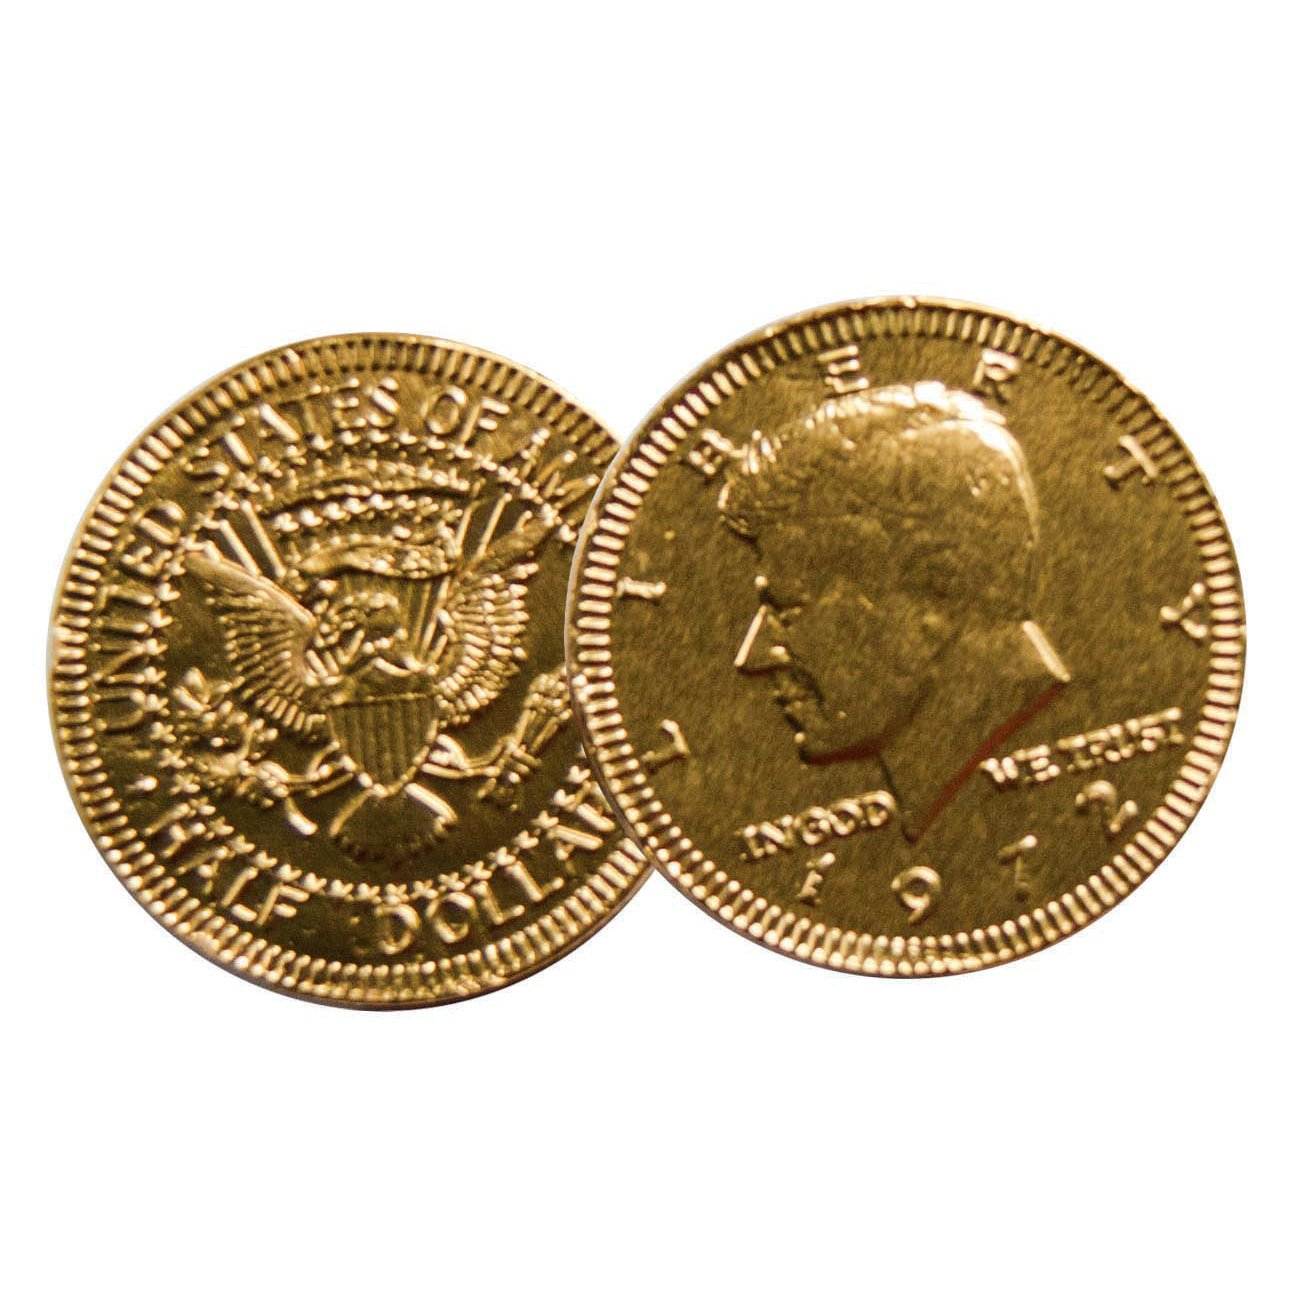 Milk Chocolate Coins Gold Foil Wrapped Washington Quarter ...